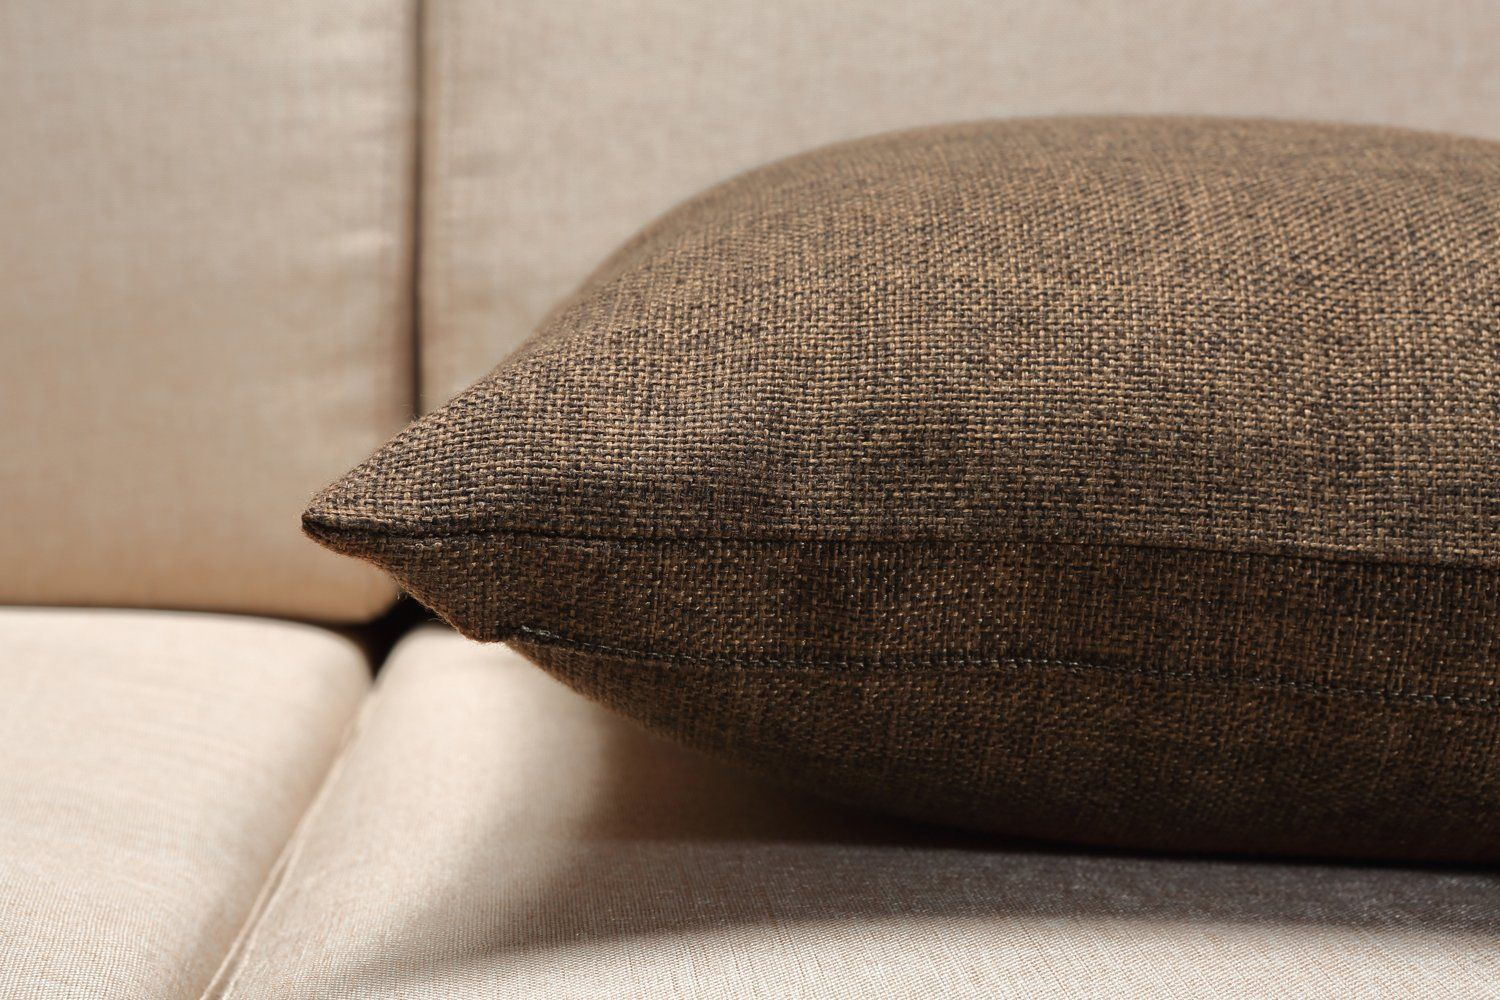 Burlap Linen Throw Pillow Case Cushion Cover Home Decorative Solid Square Pillowcase Thick Luxury Handmade With